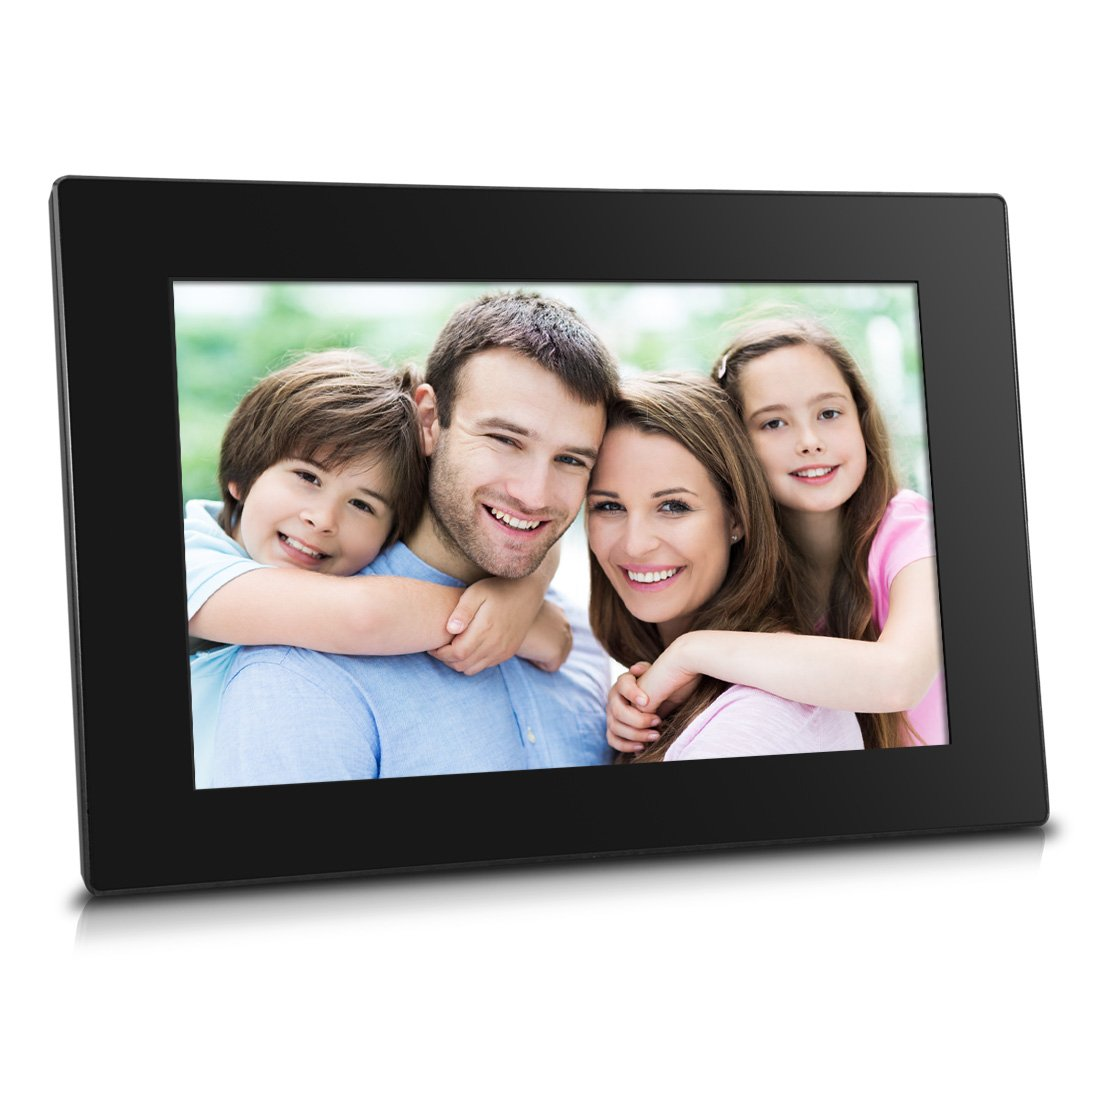 Sungale CPF1051 - 10 inch WiFi Cloud Digital Photo Frame with Touch Panel, 8GB Internal Memory & Free Cloud Storage, High-Resolution 1280x800 IPS Screen (Black) by Sungale